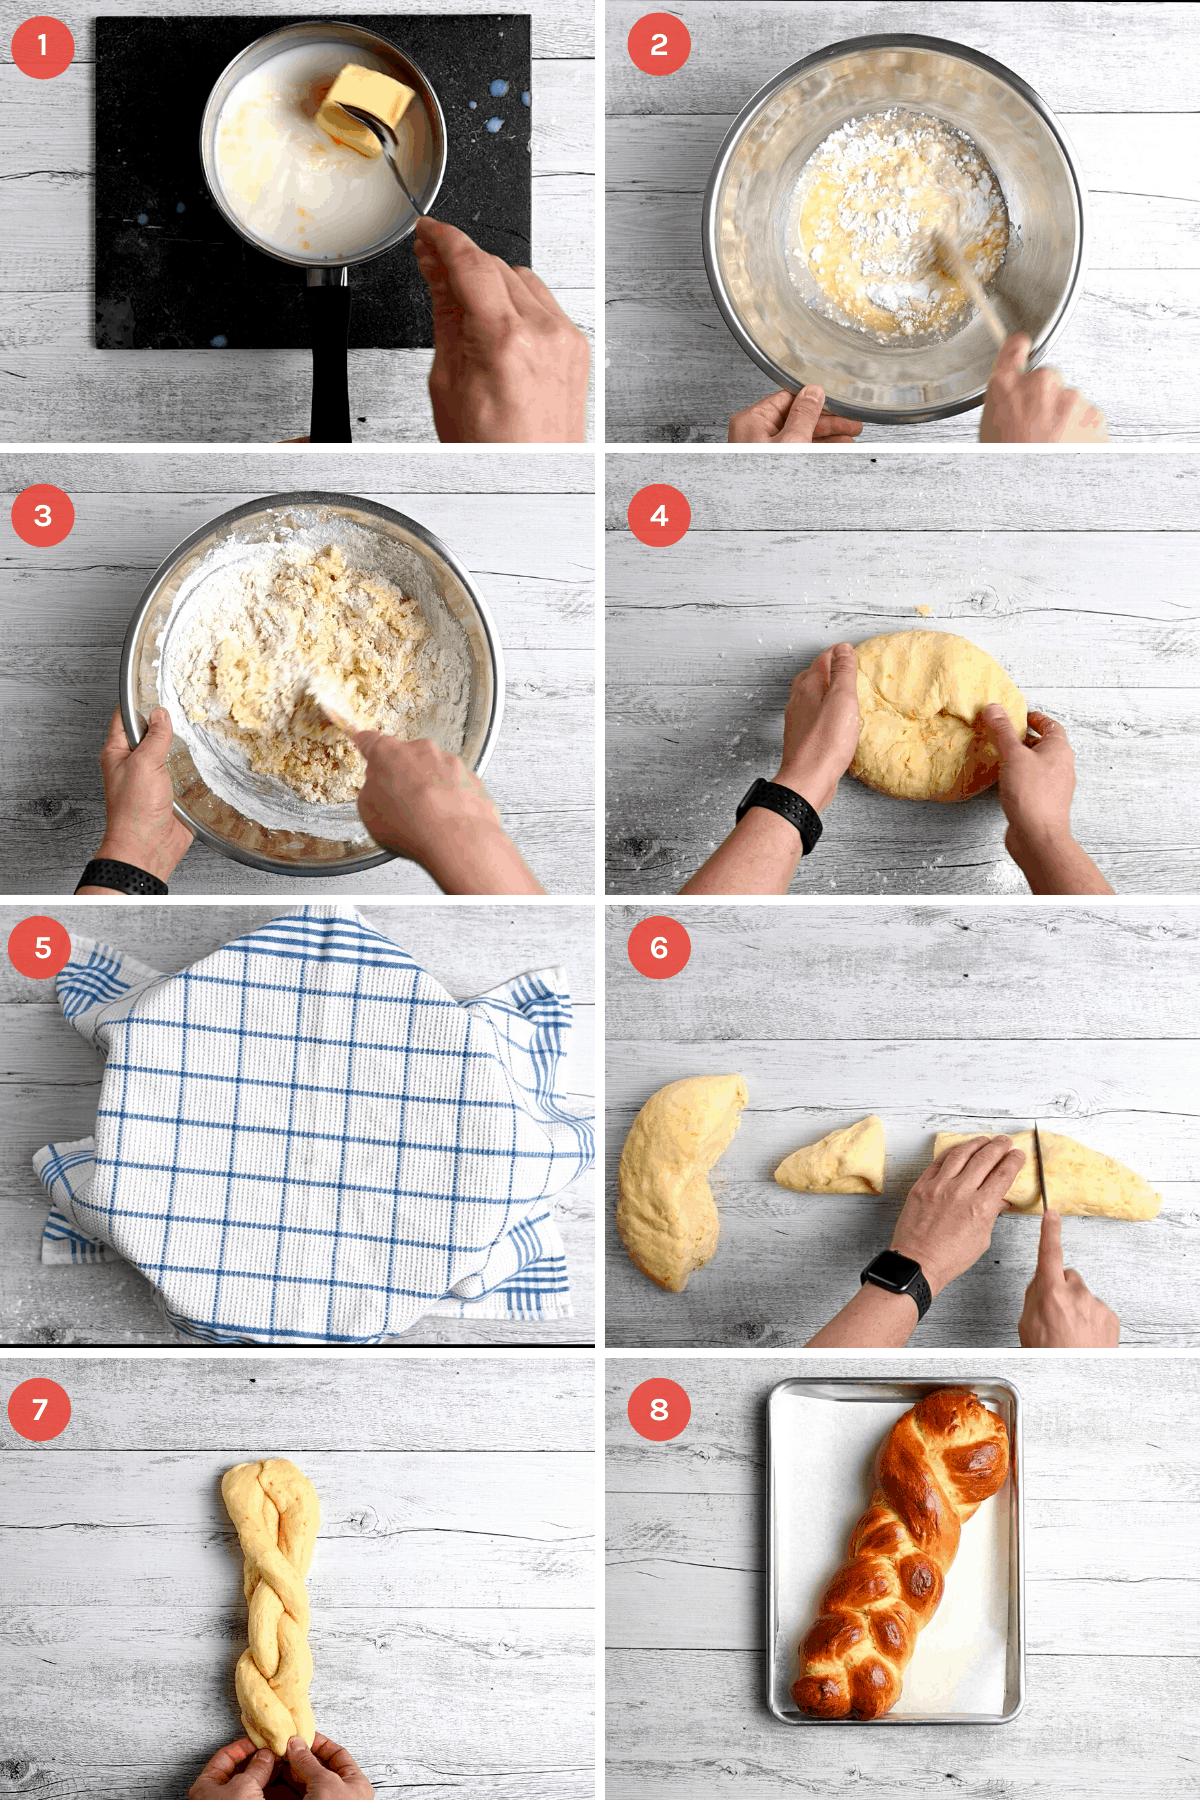 step by step instructions on how to make Greek Easter bread